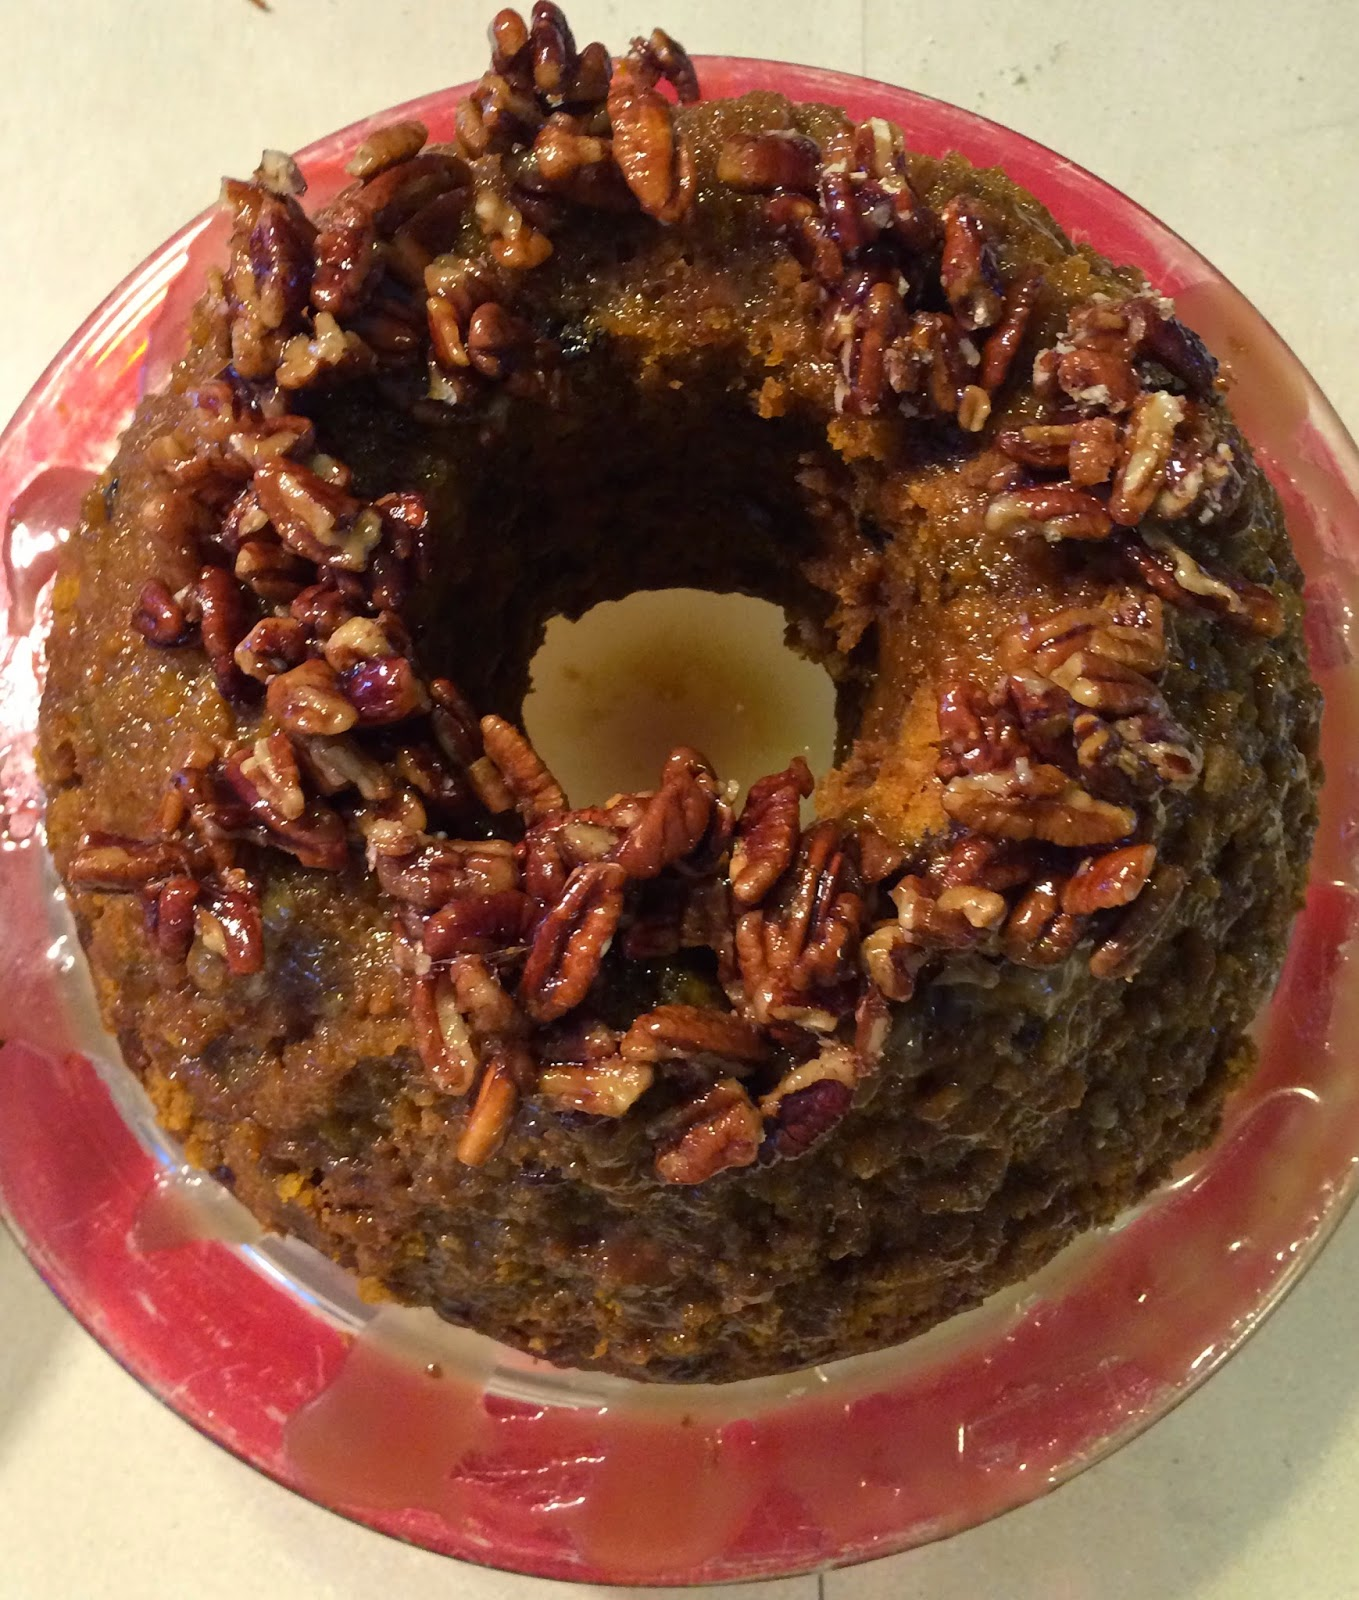 ... Fine Cooking's Pumpkin-Pecan Cake with Brown Sugar and Bourbon Glaze